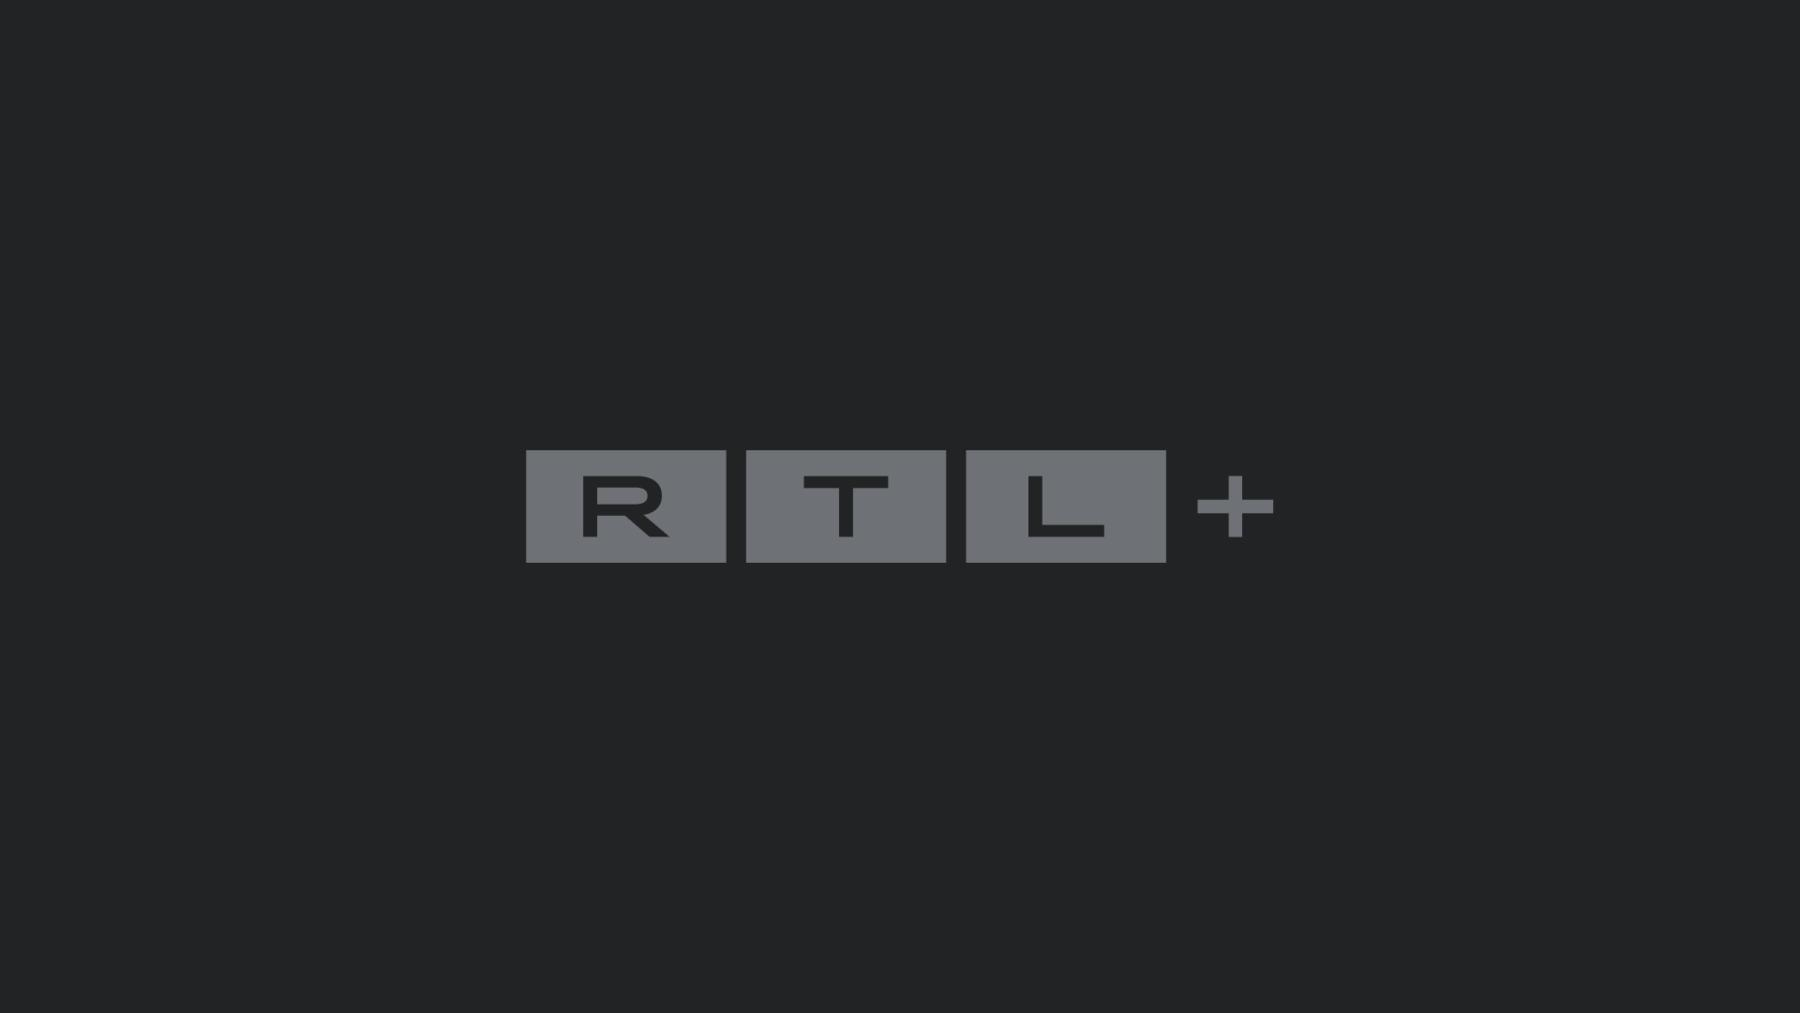 Action - Die rasantesten Stunts aller Zeiten